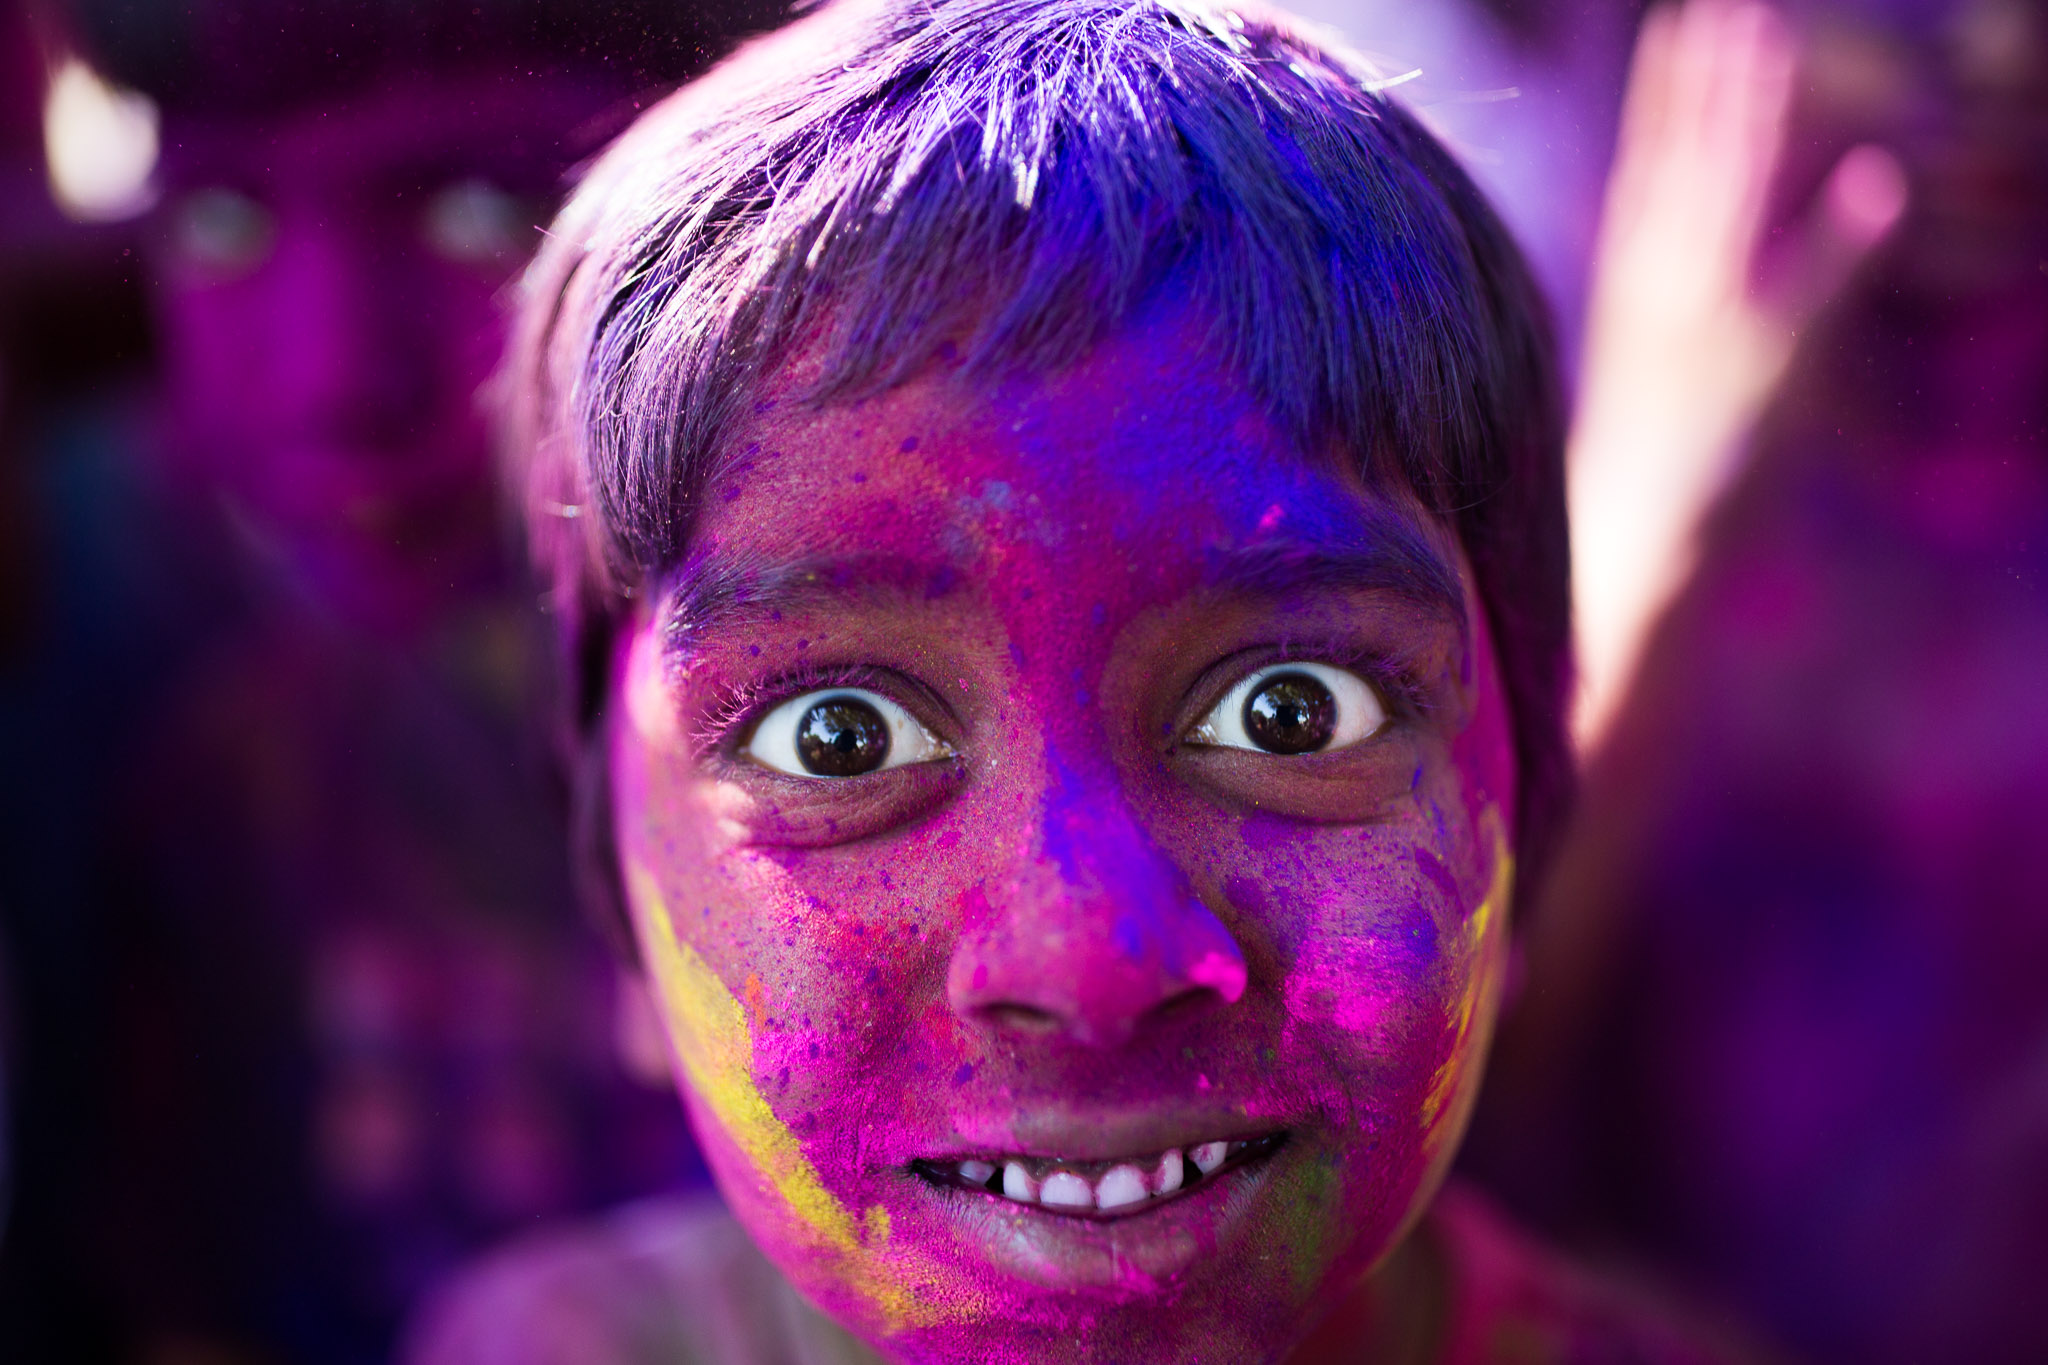 Ritvek, 7 years old, stands in front of the camera after his entire face has been covered with colored powder. Photo by Scott Ball.